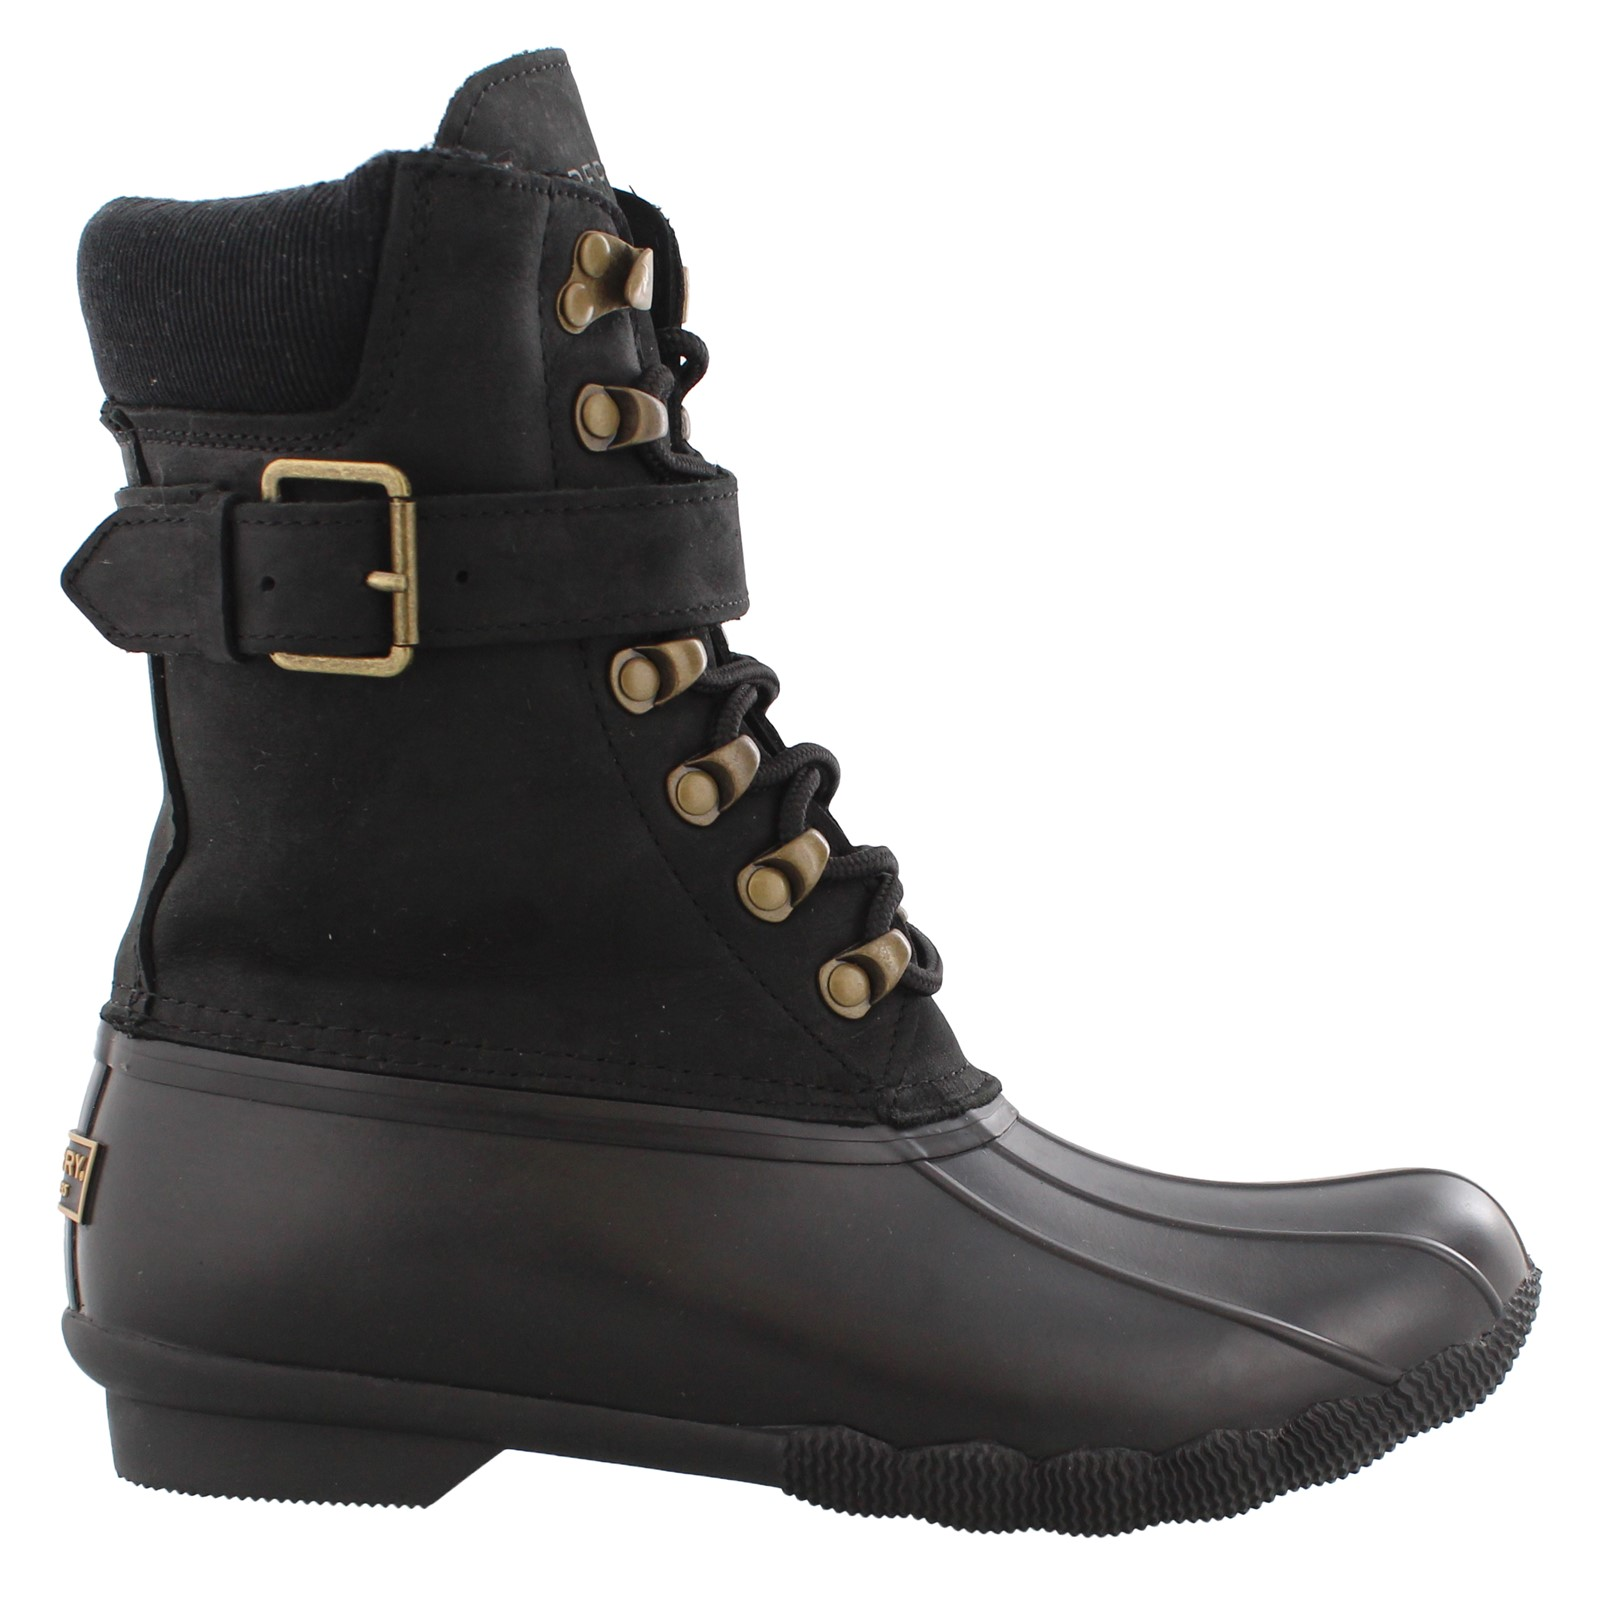 Sperry Rain Boots Clearance